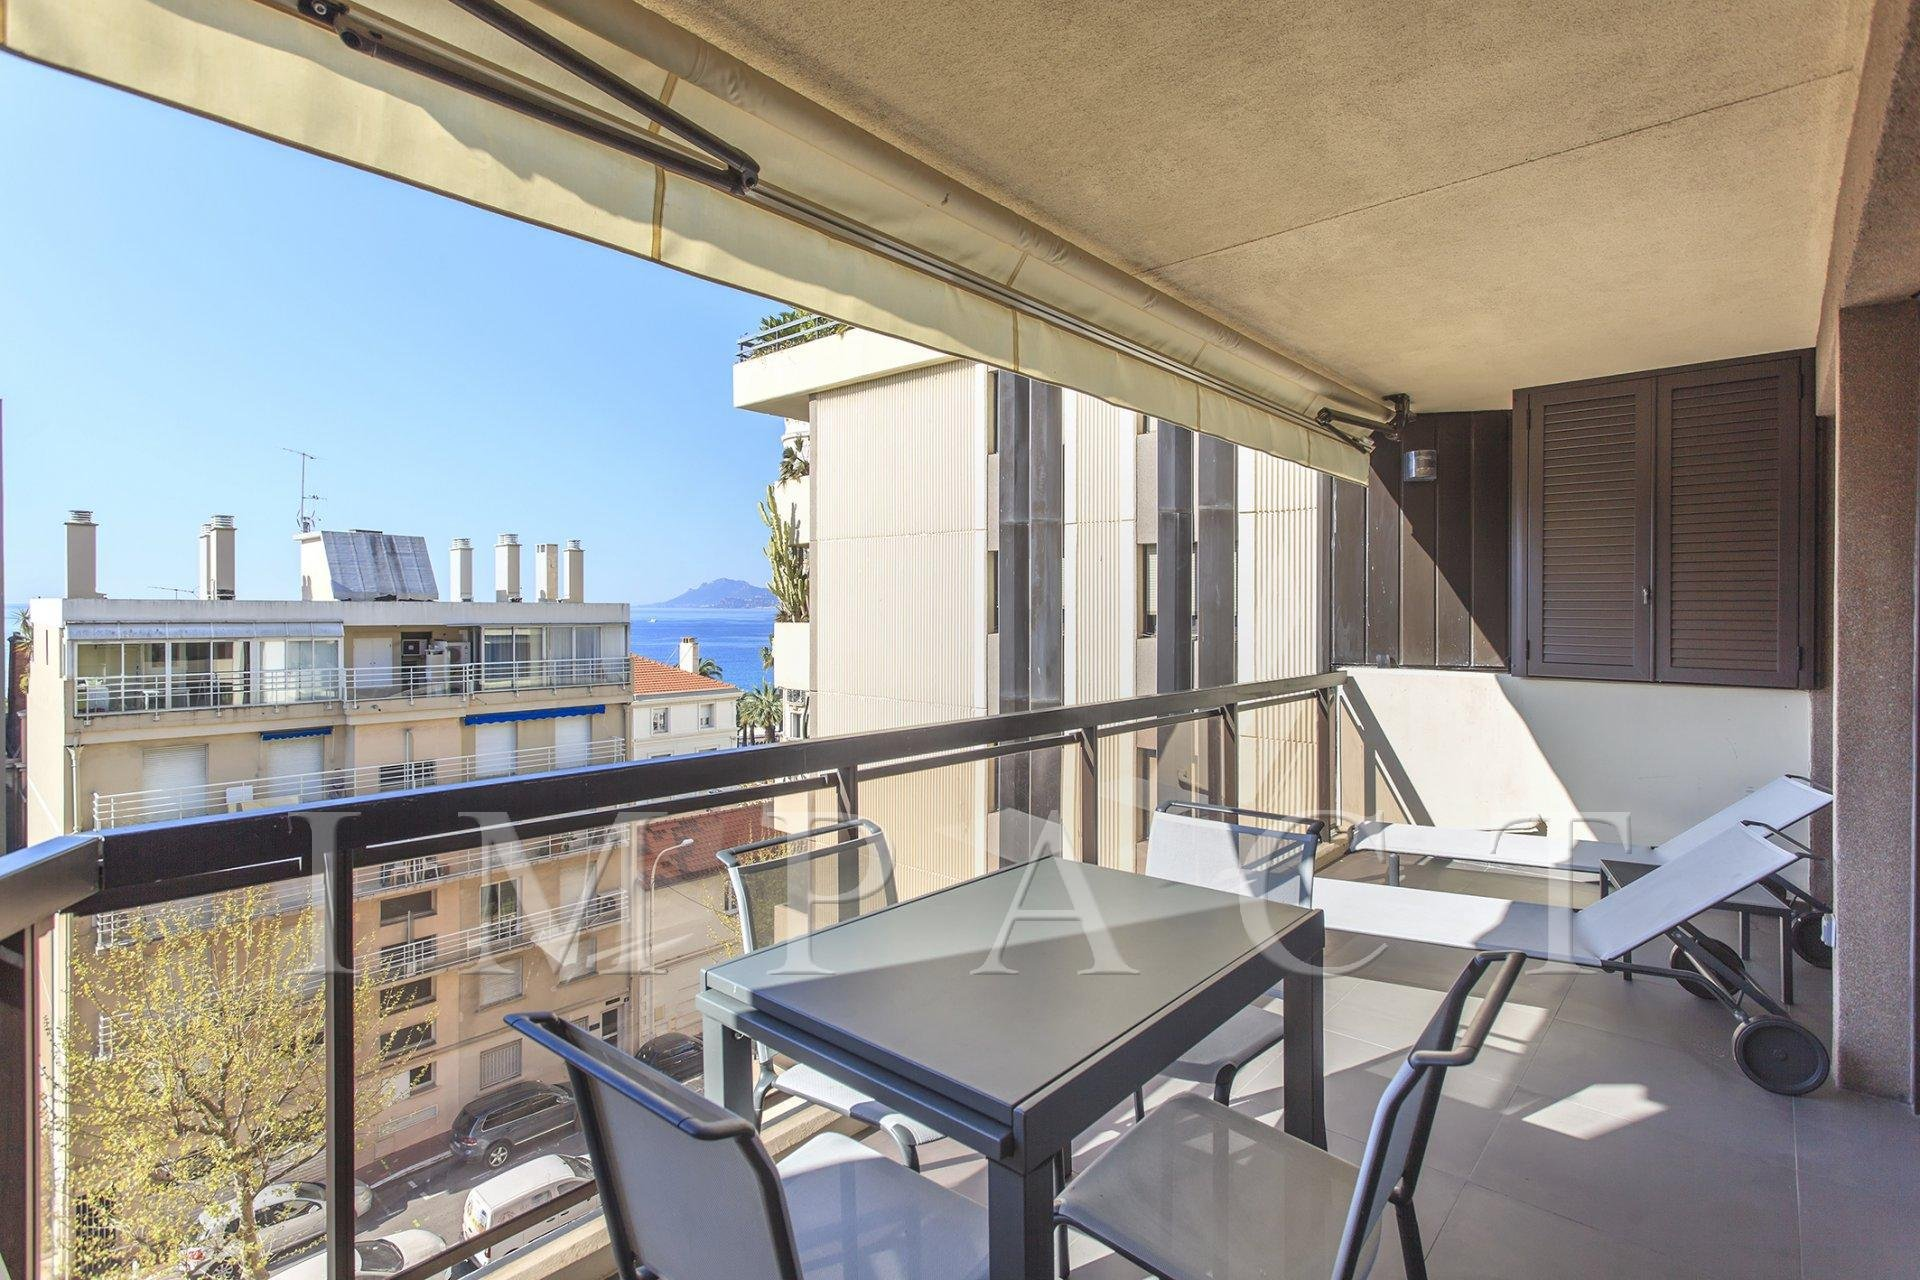 Apartment to rent in the center of Cannes